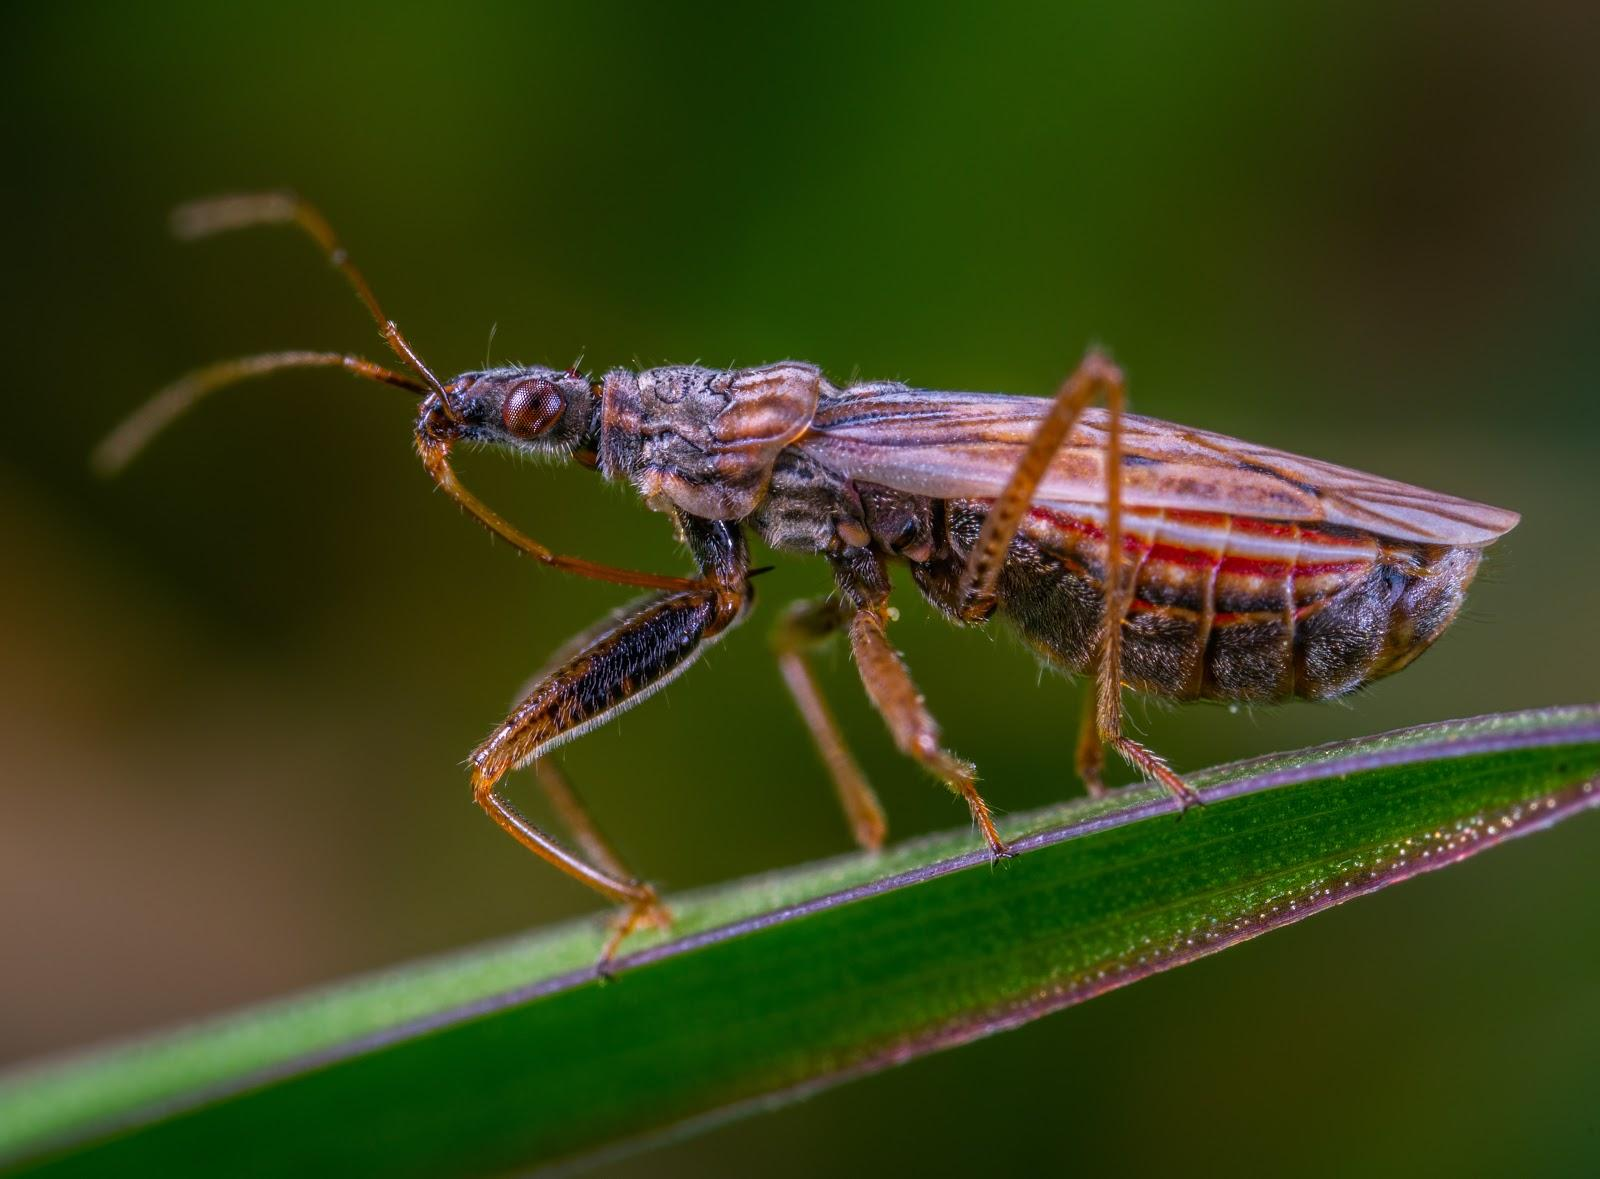 macro photography of an insect